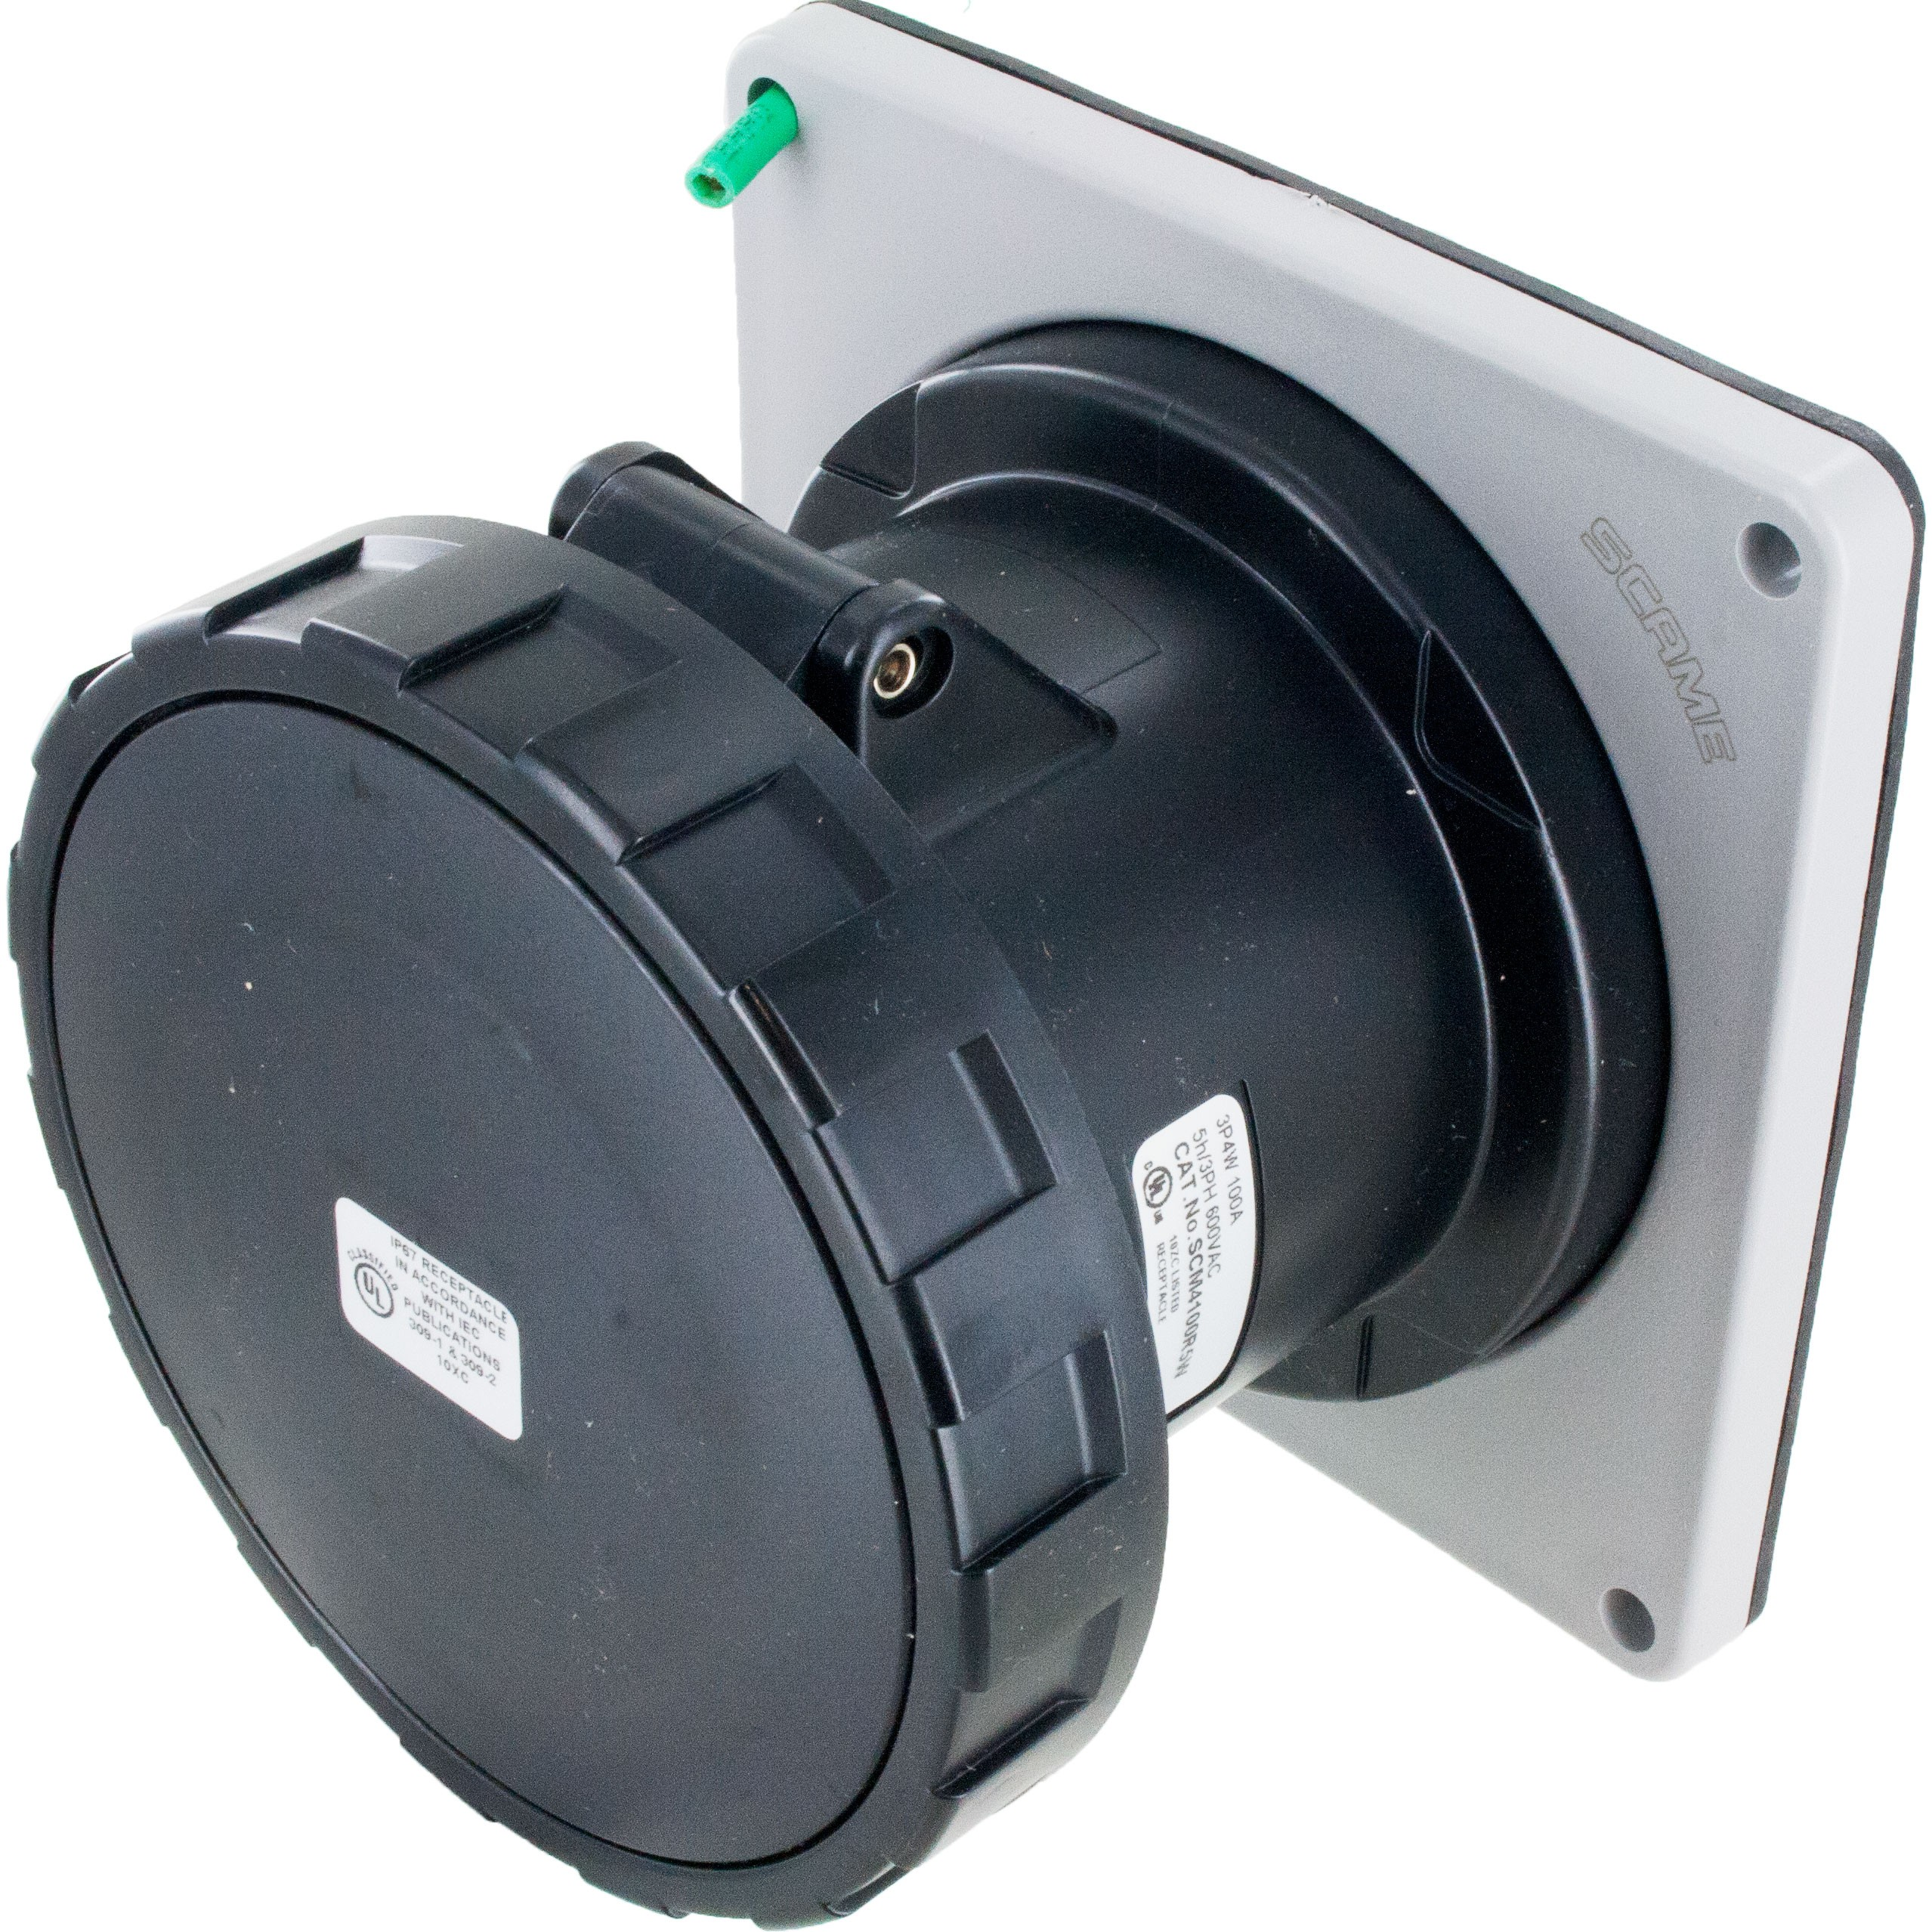 4100R5W Pin And Sleeve Receptacle 100 Amp 3 Pole 4 Wire